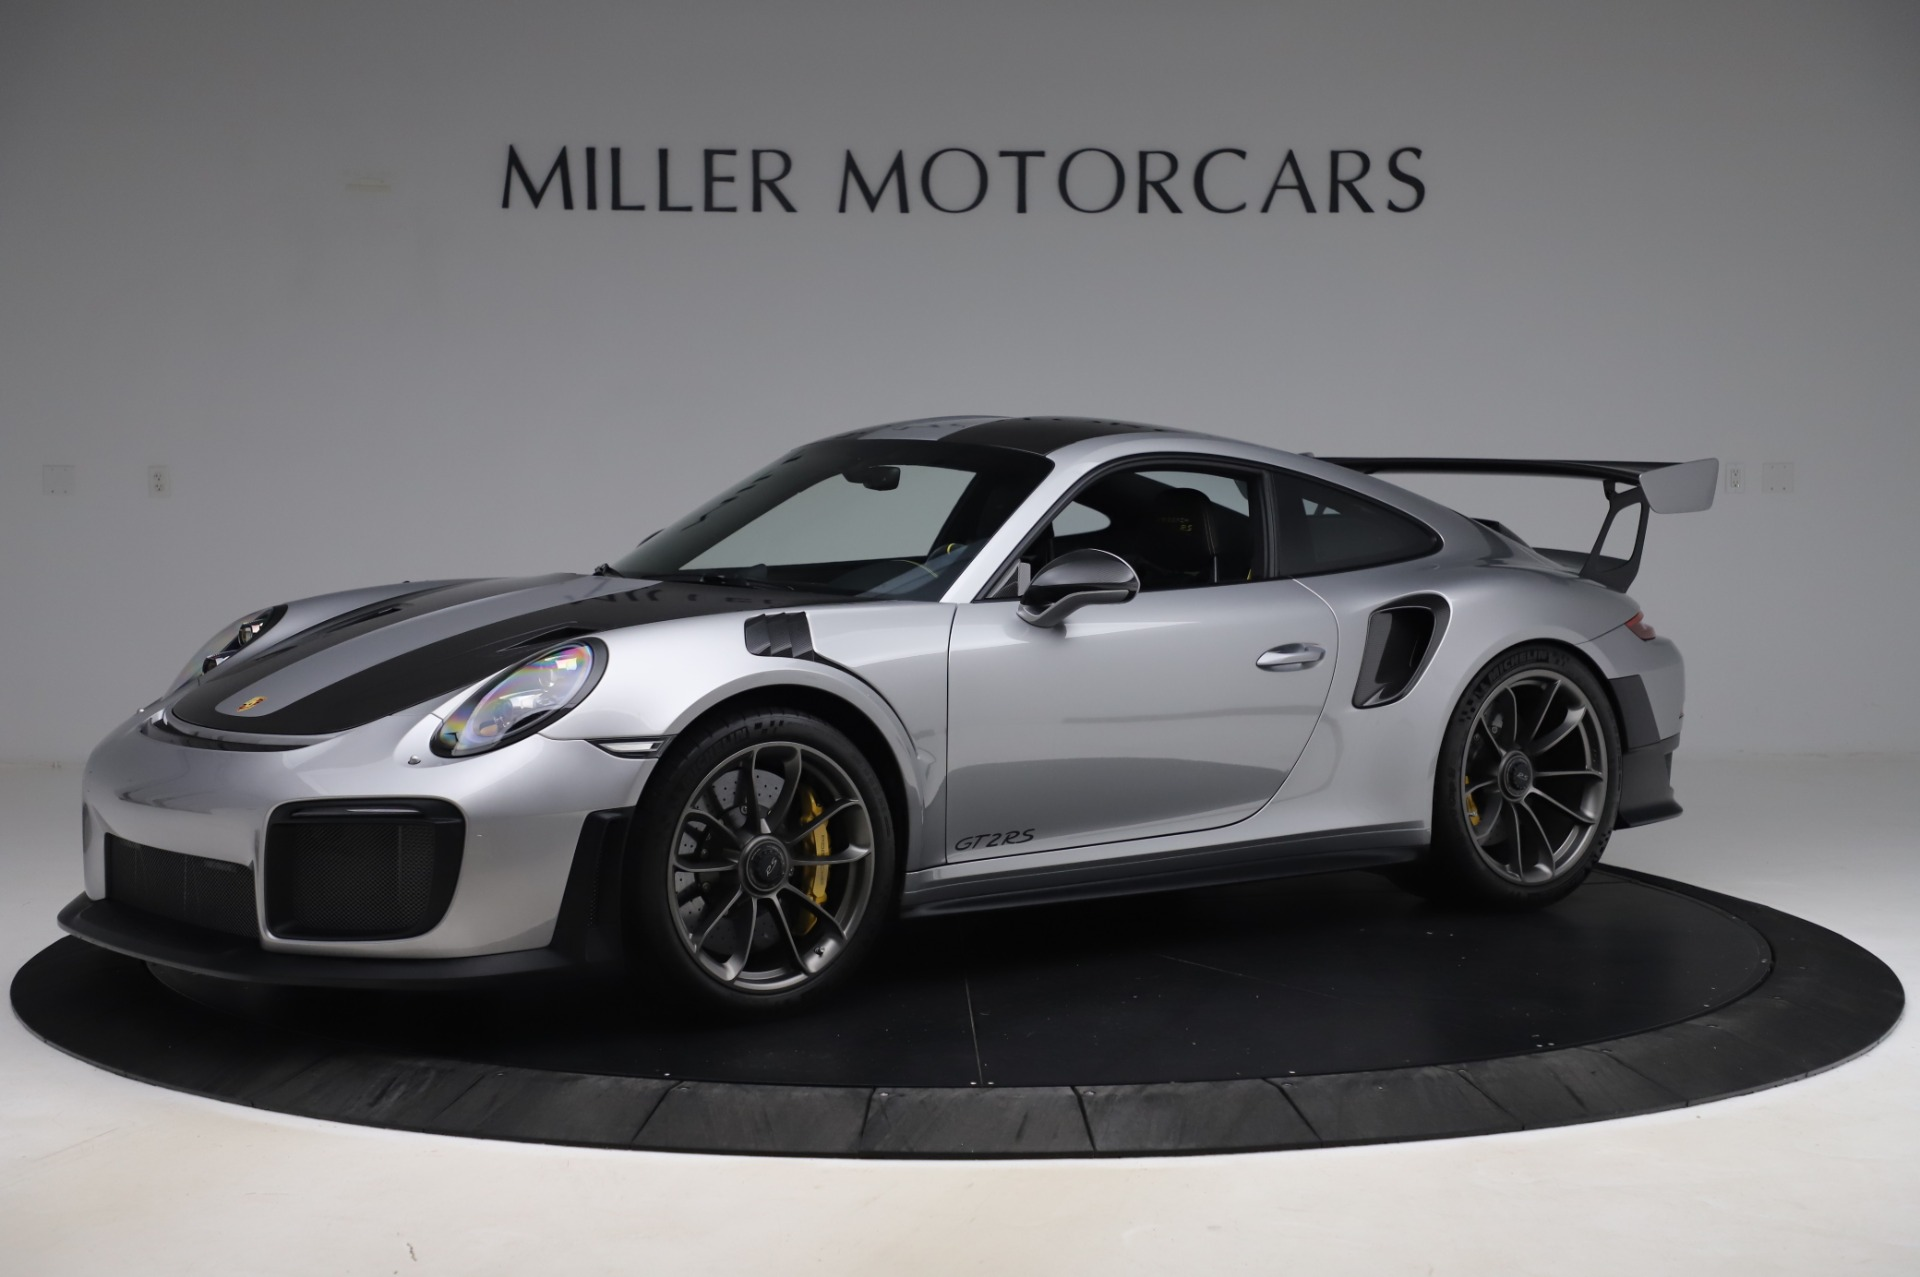 Used 2019 Porsche 911 GT2 RS for sale $316,900 at Aston Martin of Greenwich in Greenwich CT 06830 1